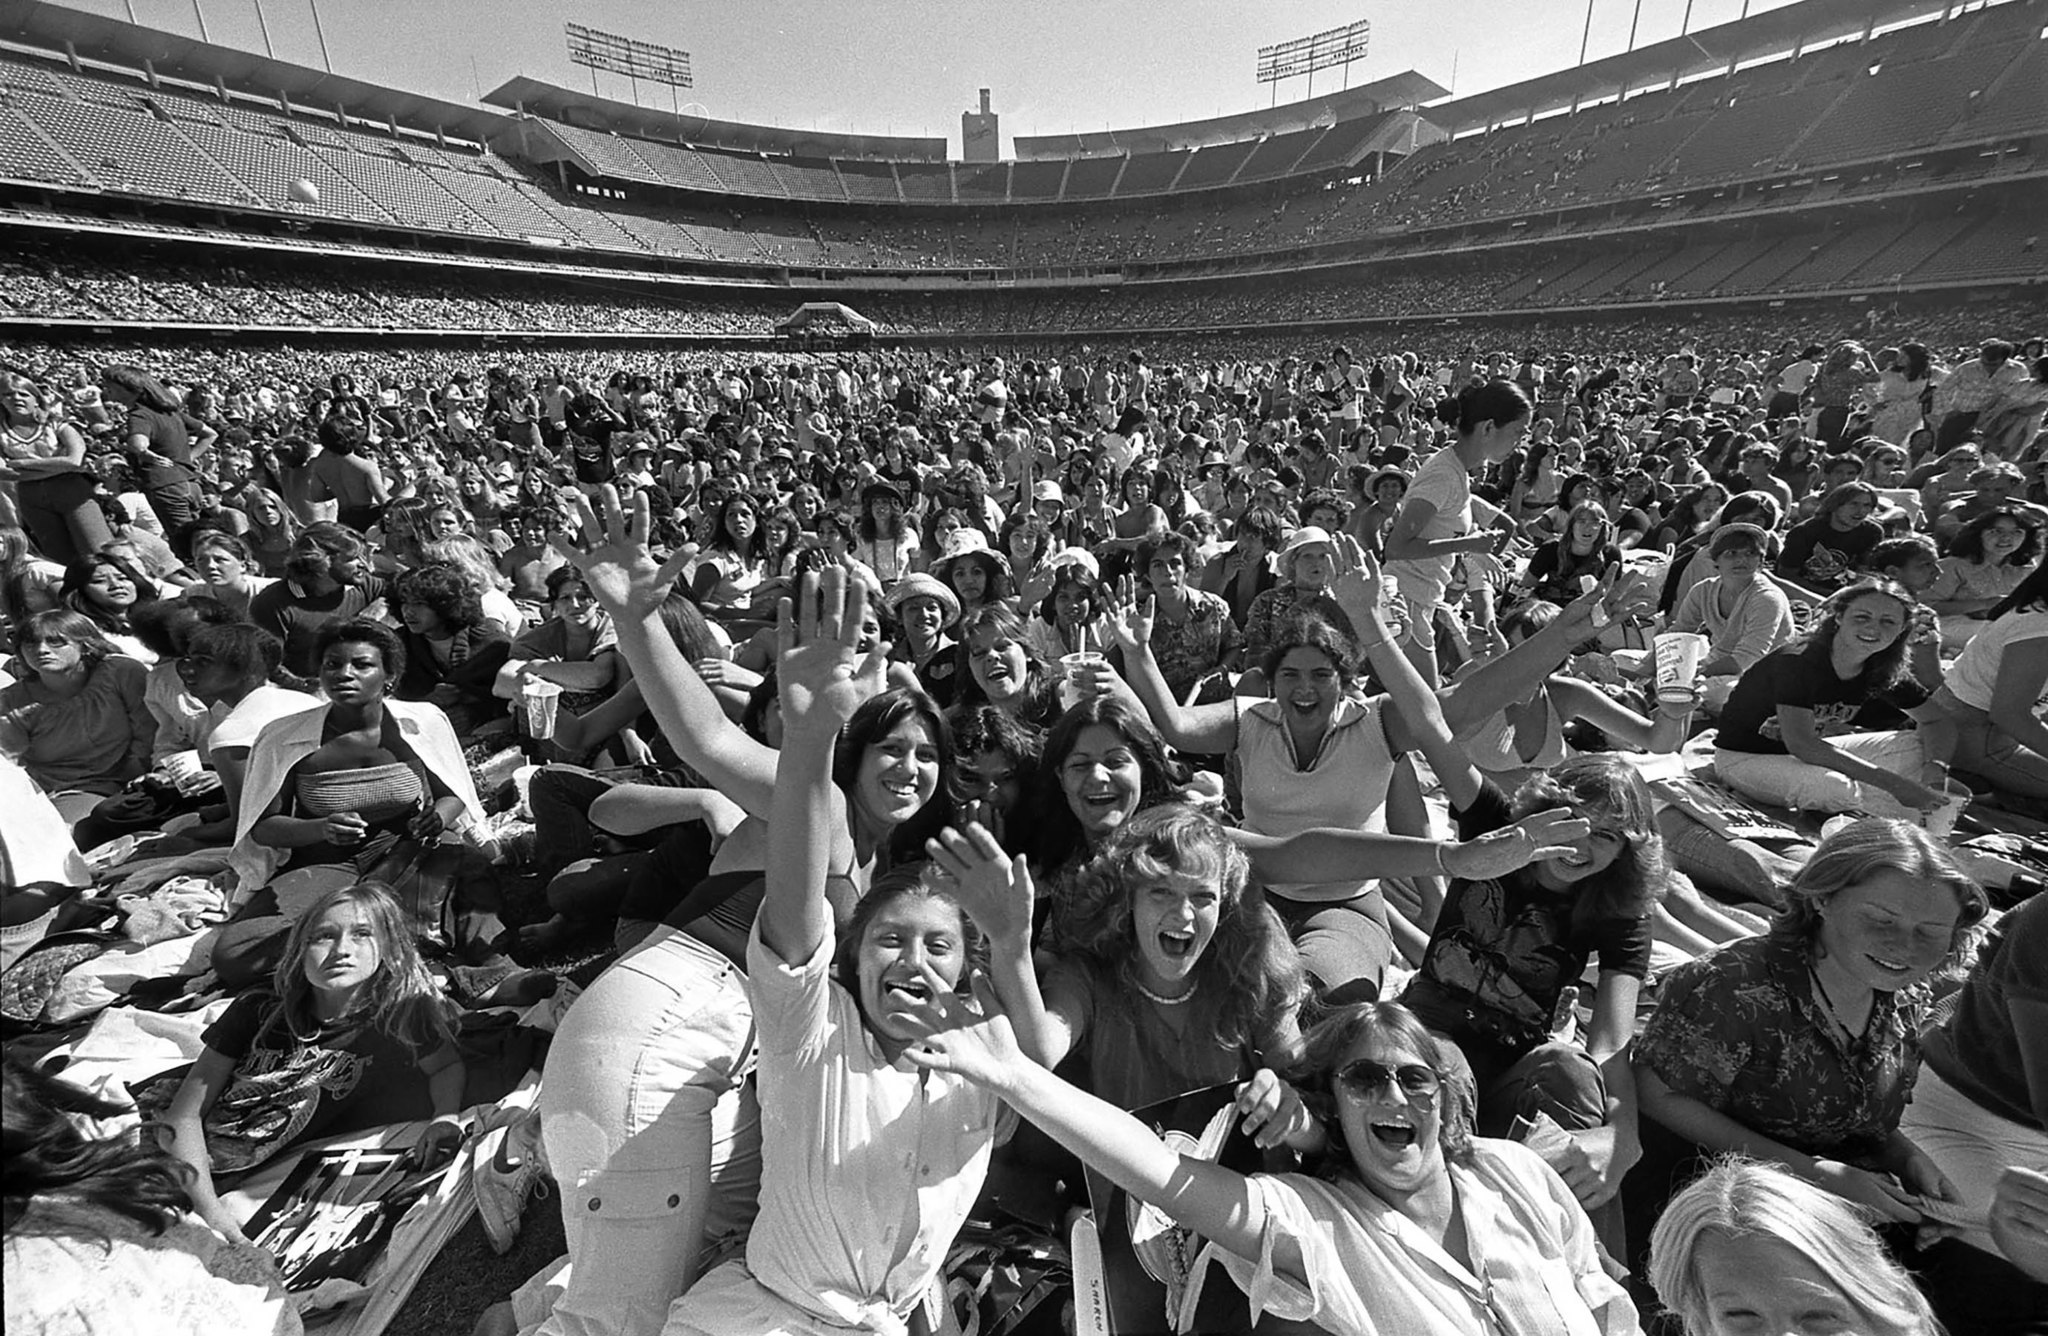 July 7, 1979: Fans arrived early to pack Dodger Stadium for a sell-out concert by the Bee Gees rock